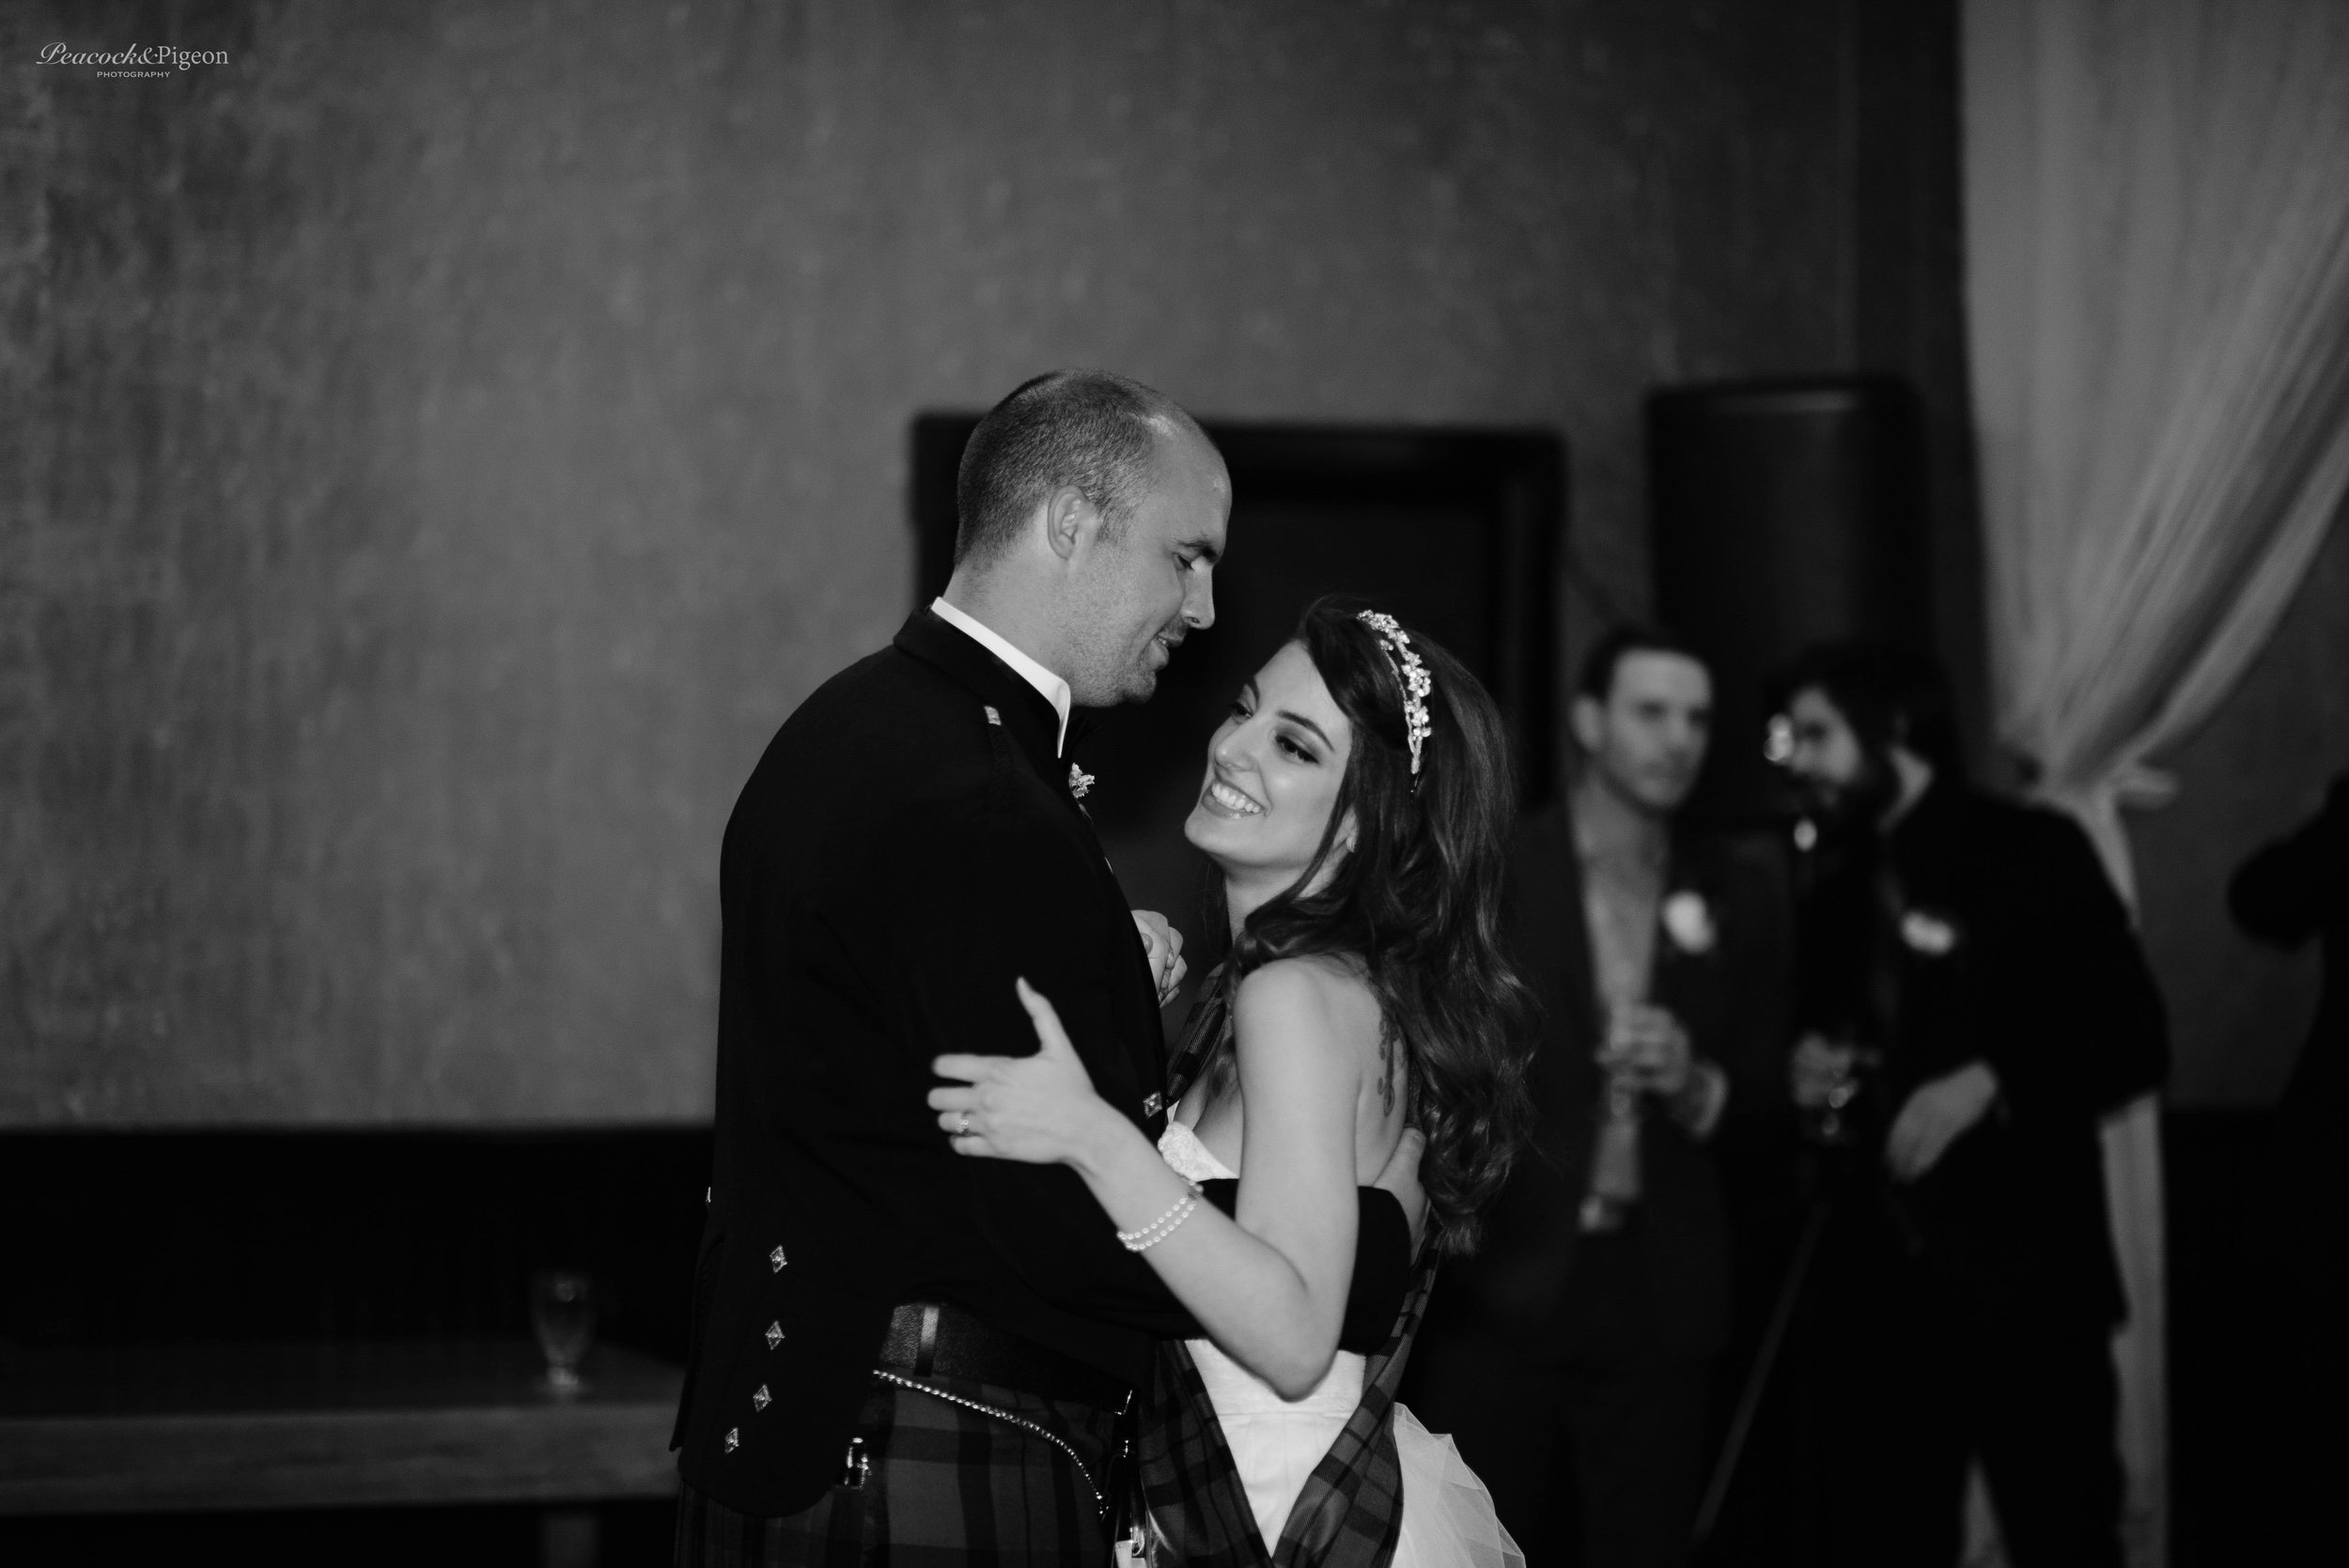 Callum_and_Sara's_Wedding_at_the_Cork_Factory_Hotel_in_Lancaster-Part_Seven_First_Dances_Black_and_White_Watermarked-12.jpg